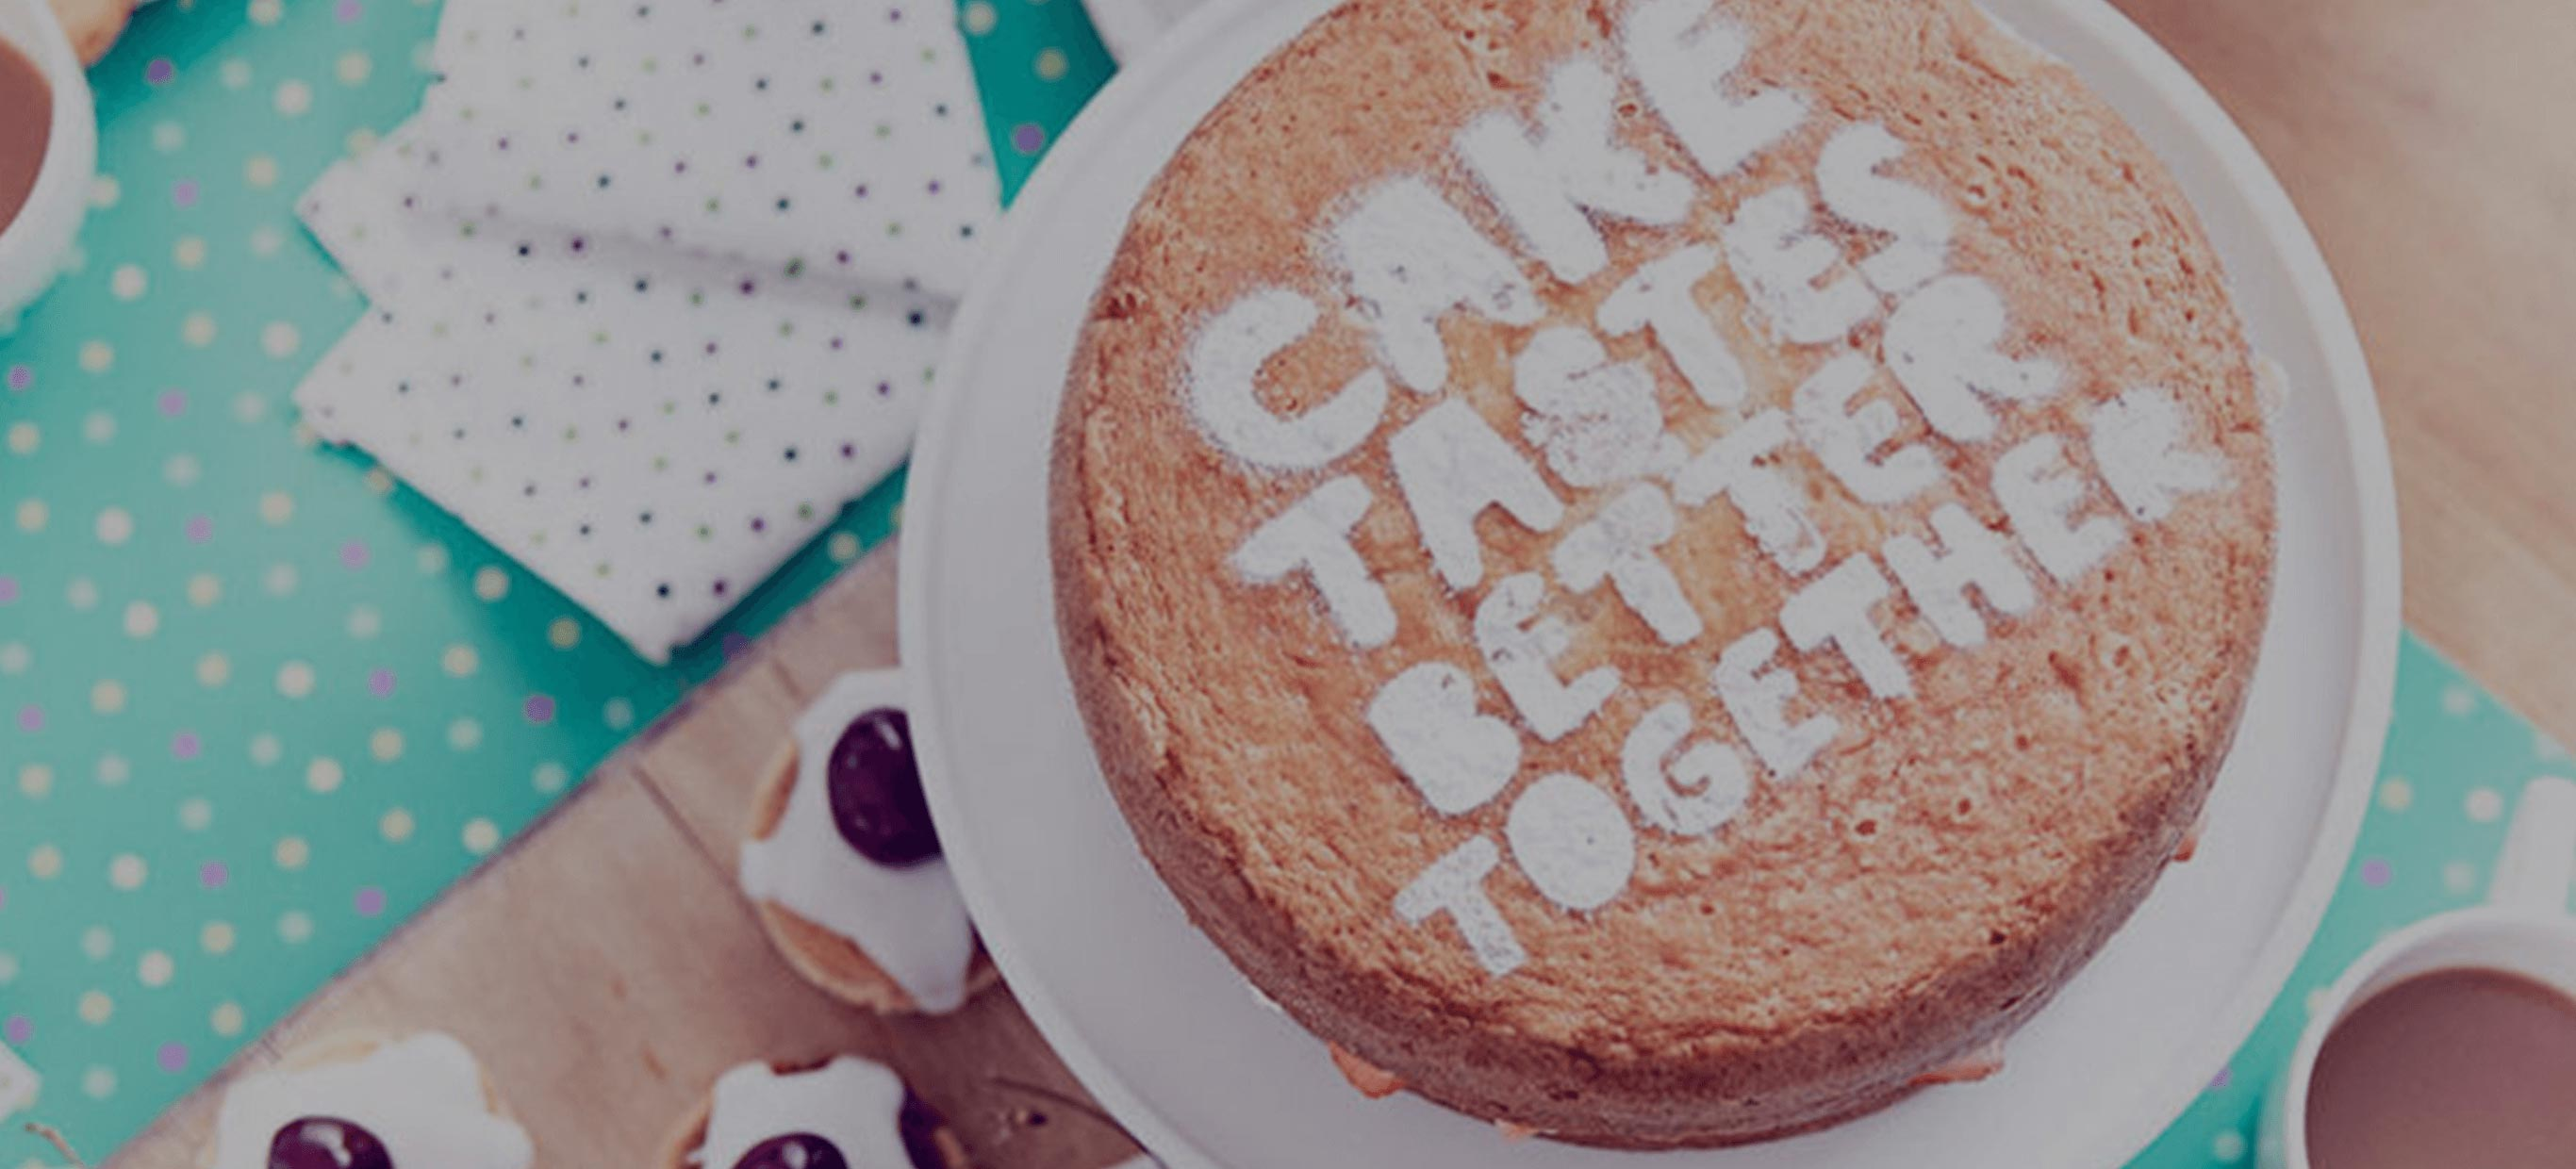 Coffee Morning for Macmillan Cancer Support - Fundraising for those living with cancer through the World's Biggest Coffee Morning event